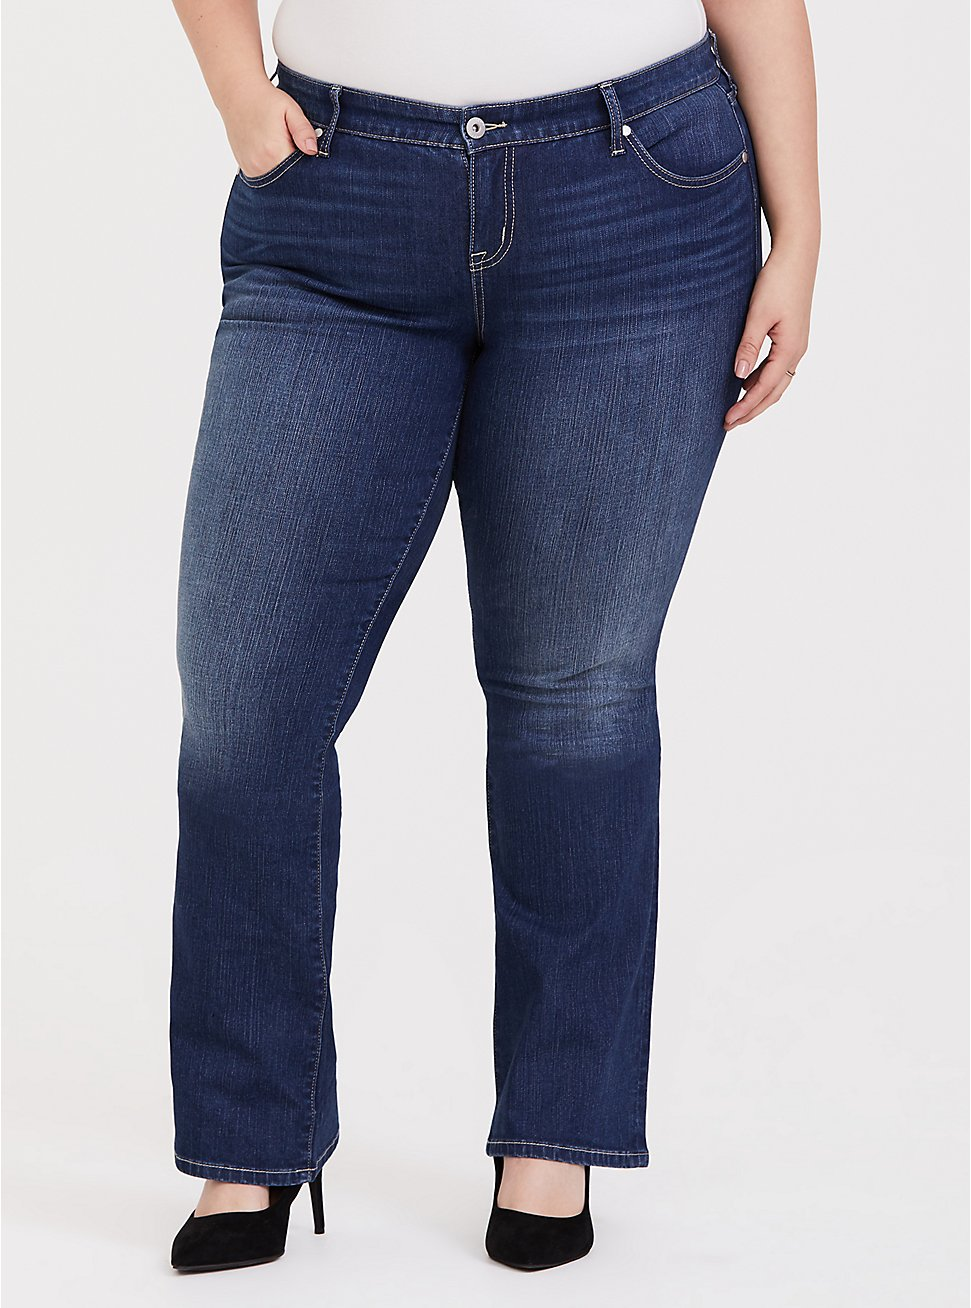 Plus Size Slim Boot Jean - Vintage Stretch Medium Wash, BACK COUNTRY, hi-res